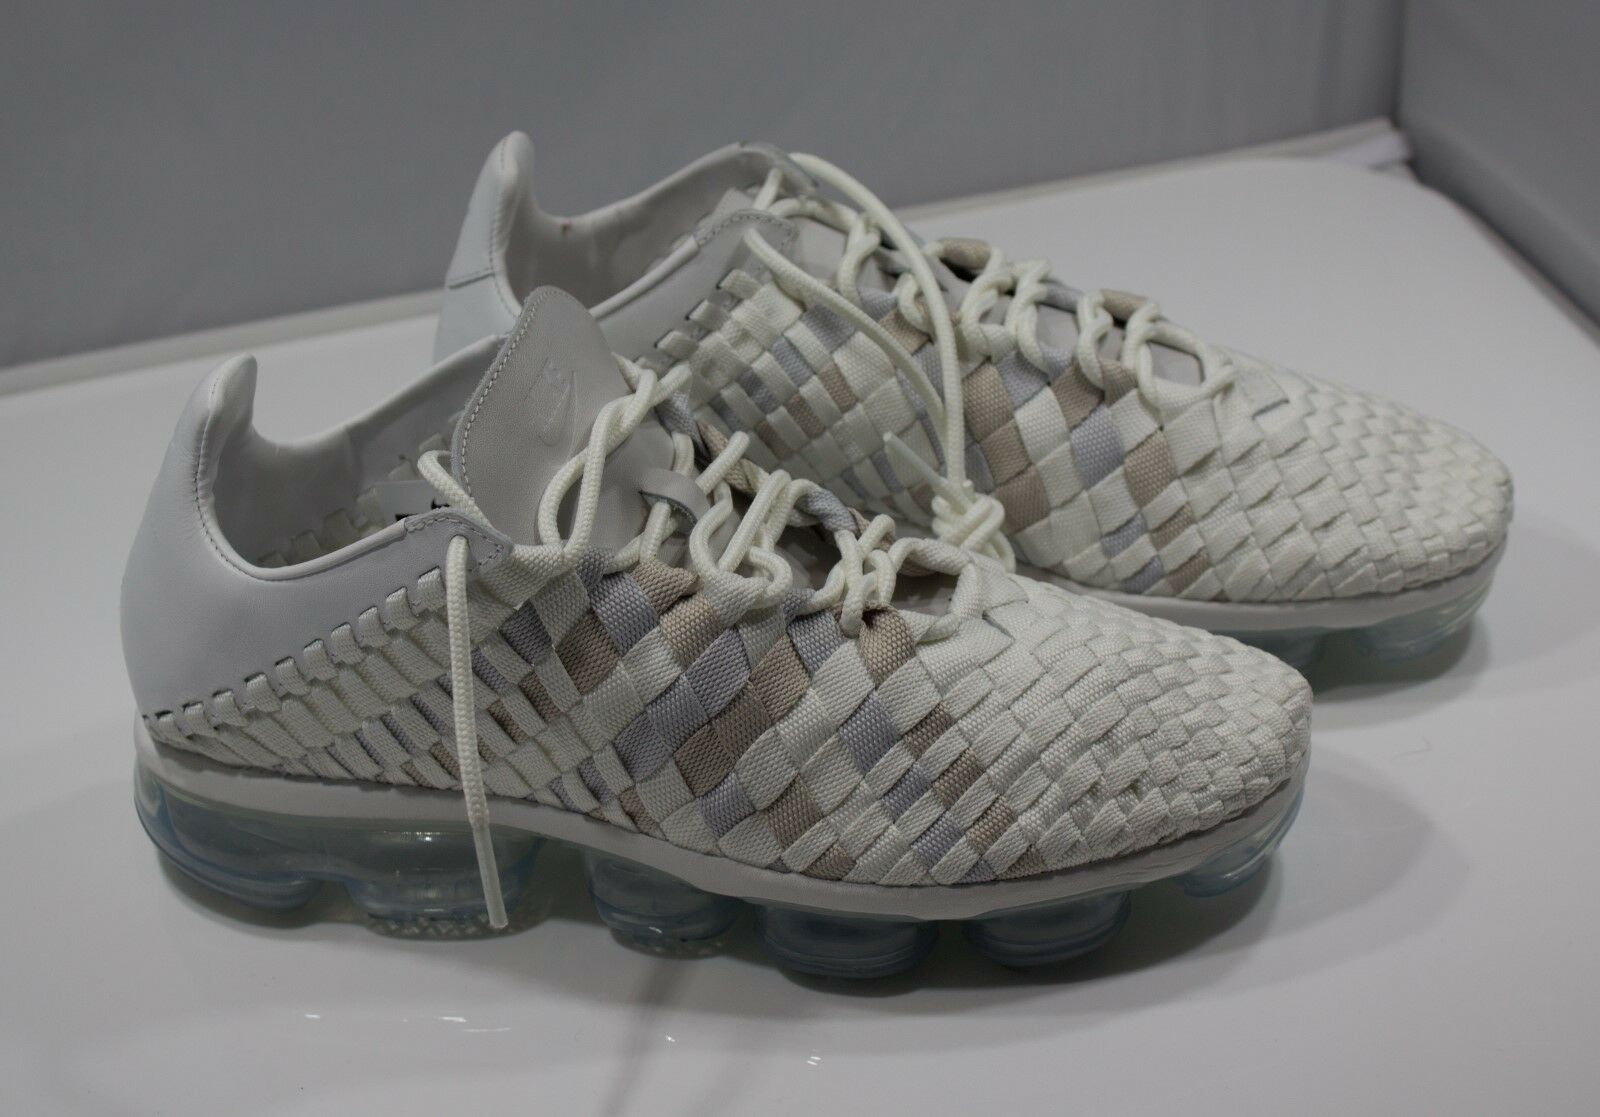 NIKE  VAPORMAX INNEVA AO2447 100 Size 11.5 US Fast Free Shipping REAL PICTURES